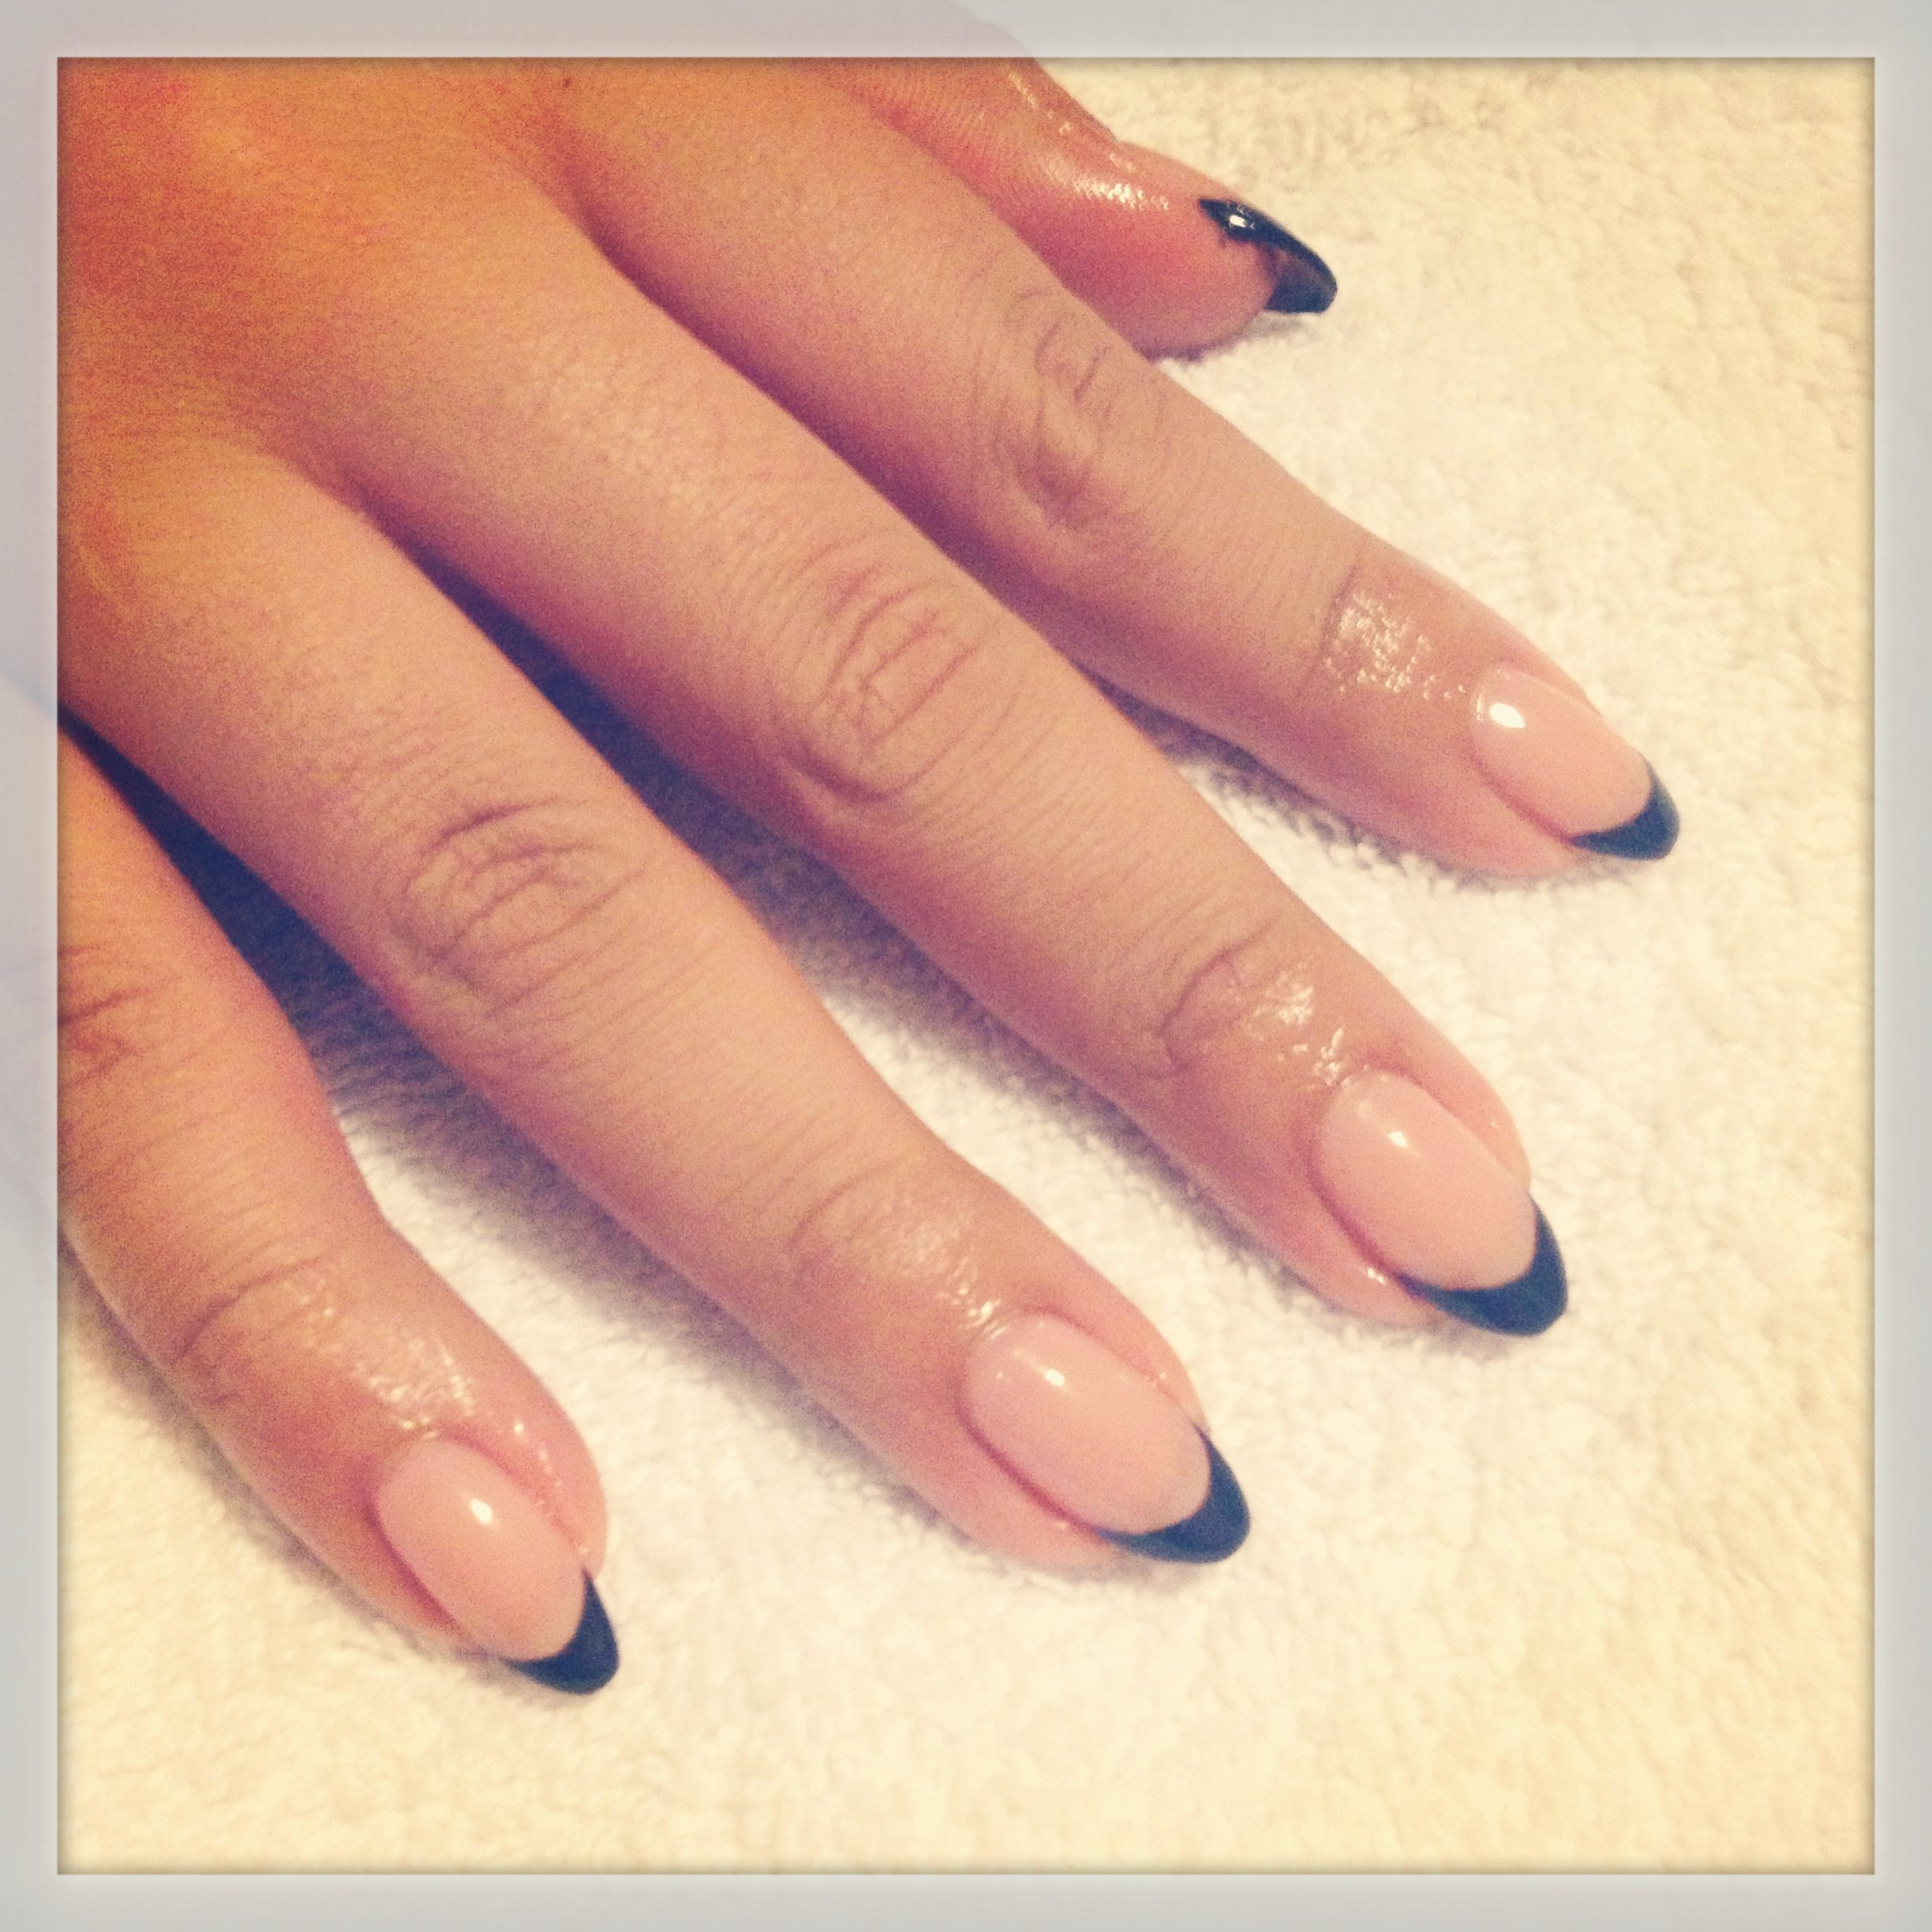 Black French manicure   Nails   Pinterest   Black french manicure ...